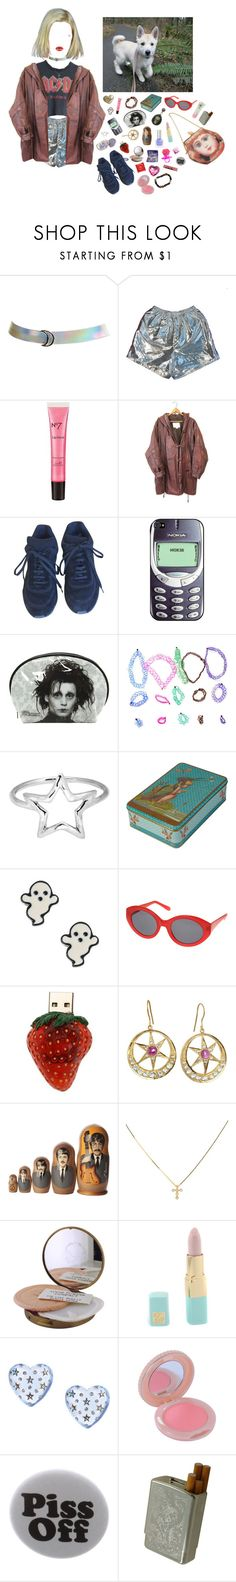 """""""I was born without you, babe, but my feelings were a little bit too strong"""" by queenofrocknroll ❤ liked on Polyvore featuring Wet Seal, BARBARELLA, Boots No7, Chanel, Nokia, Adina Reyter, claire's, Topshop, Emma Chapman and Estée Lauder"""